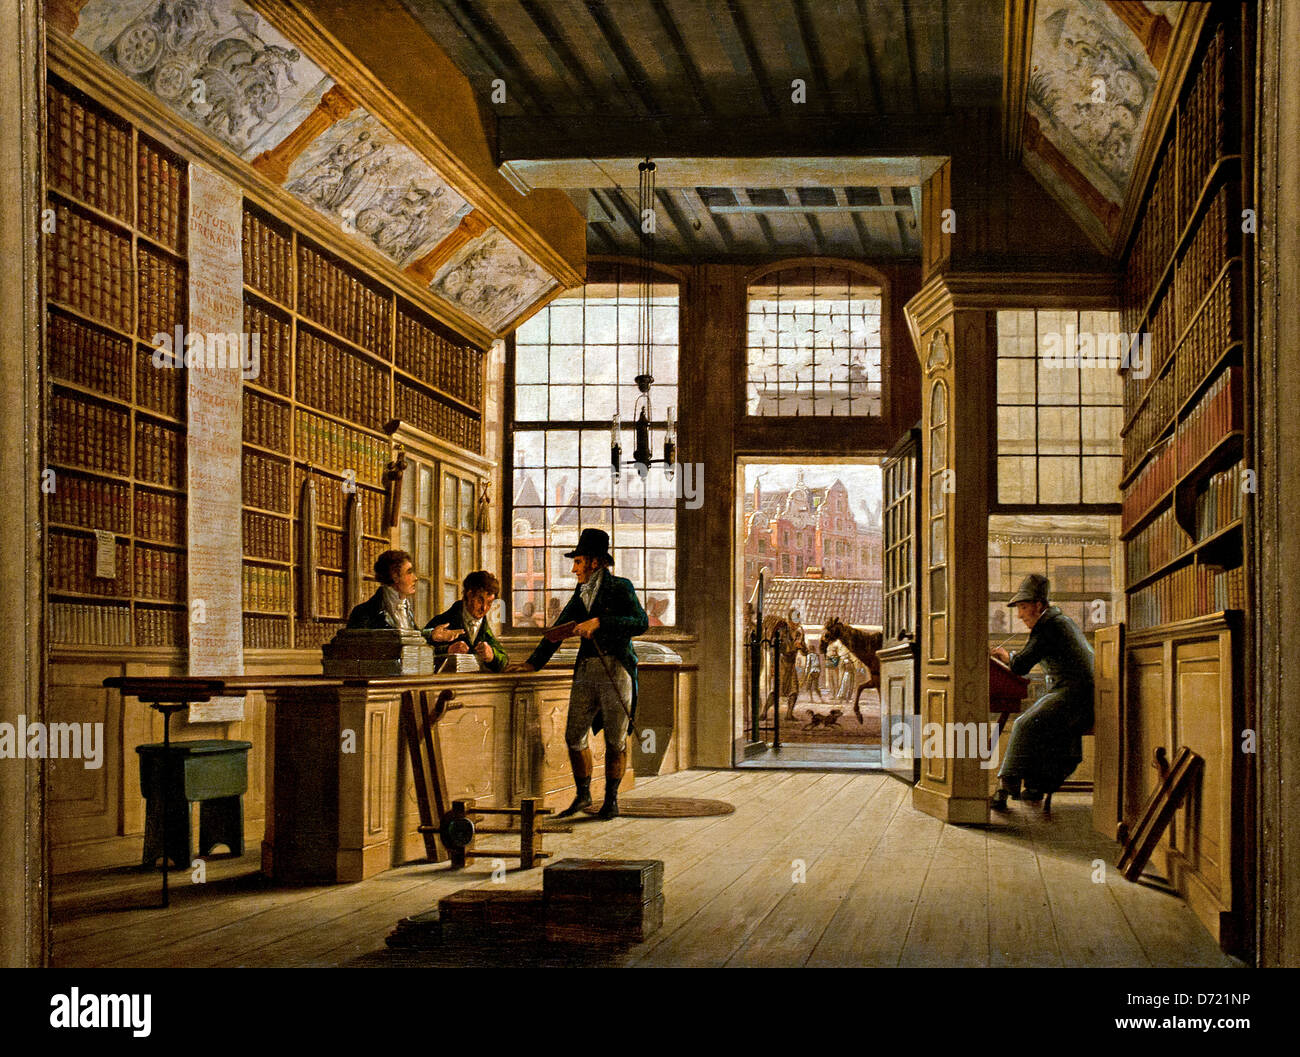 The Shop of  Bookseller Bookdealer  Pieter Meijer Warnars Amsterdam 1820 Johannes Jelgershuis 1770-1836   Dutch - Stock Image